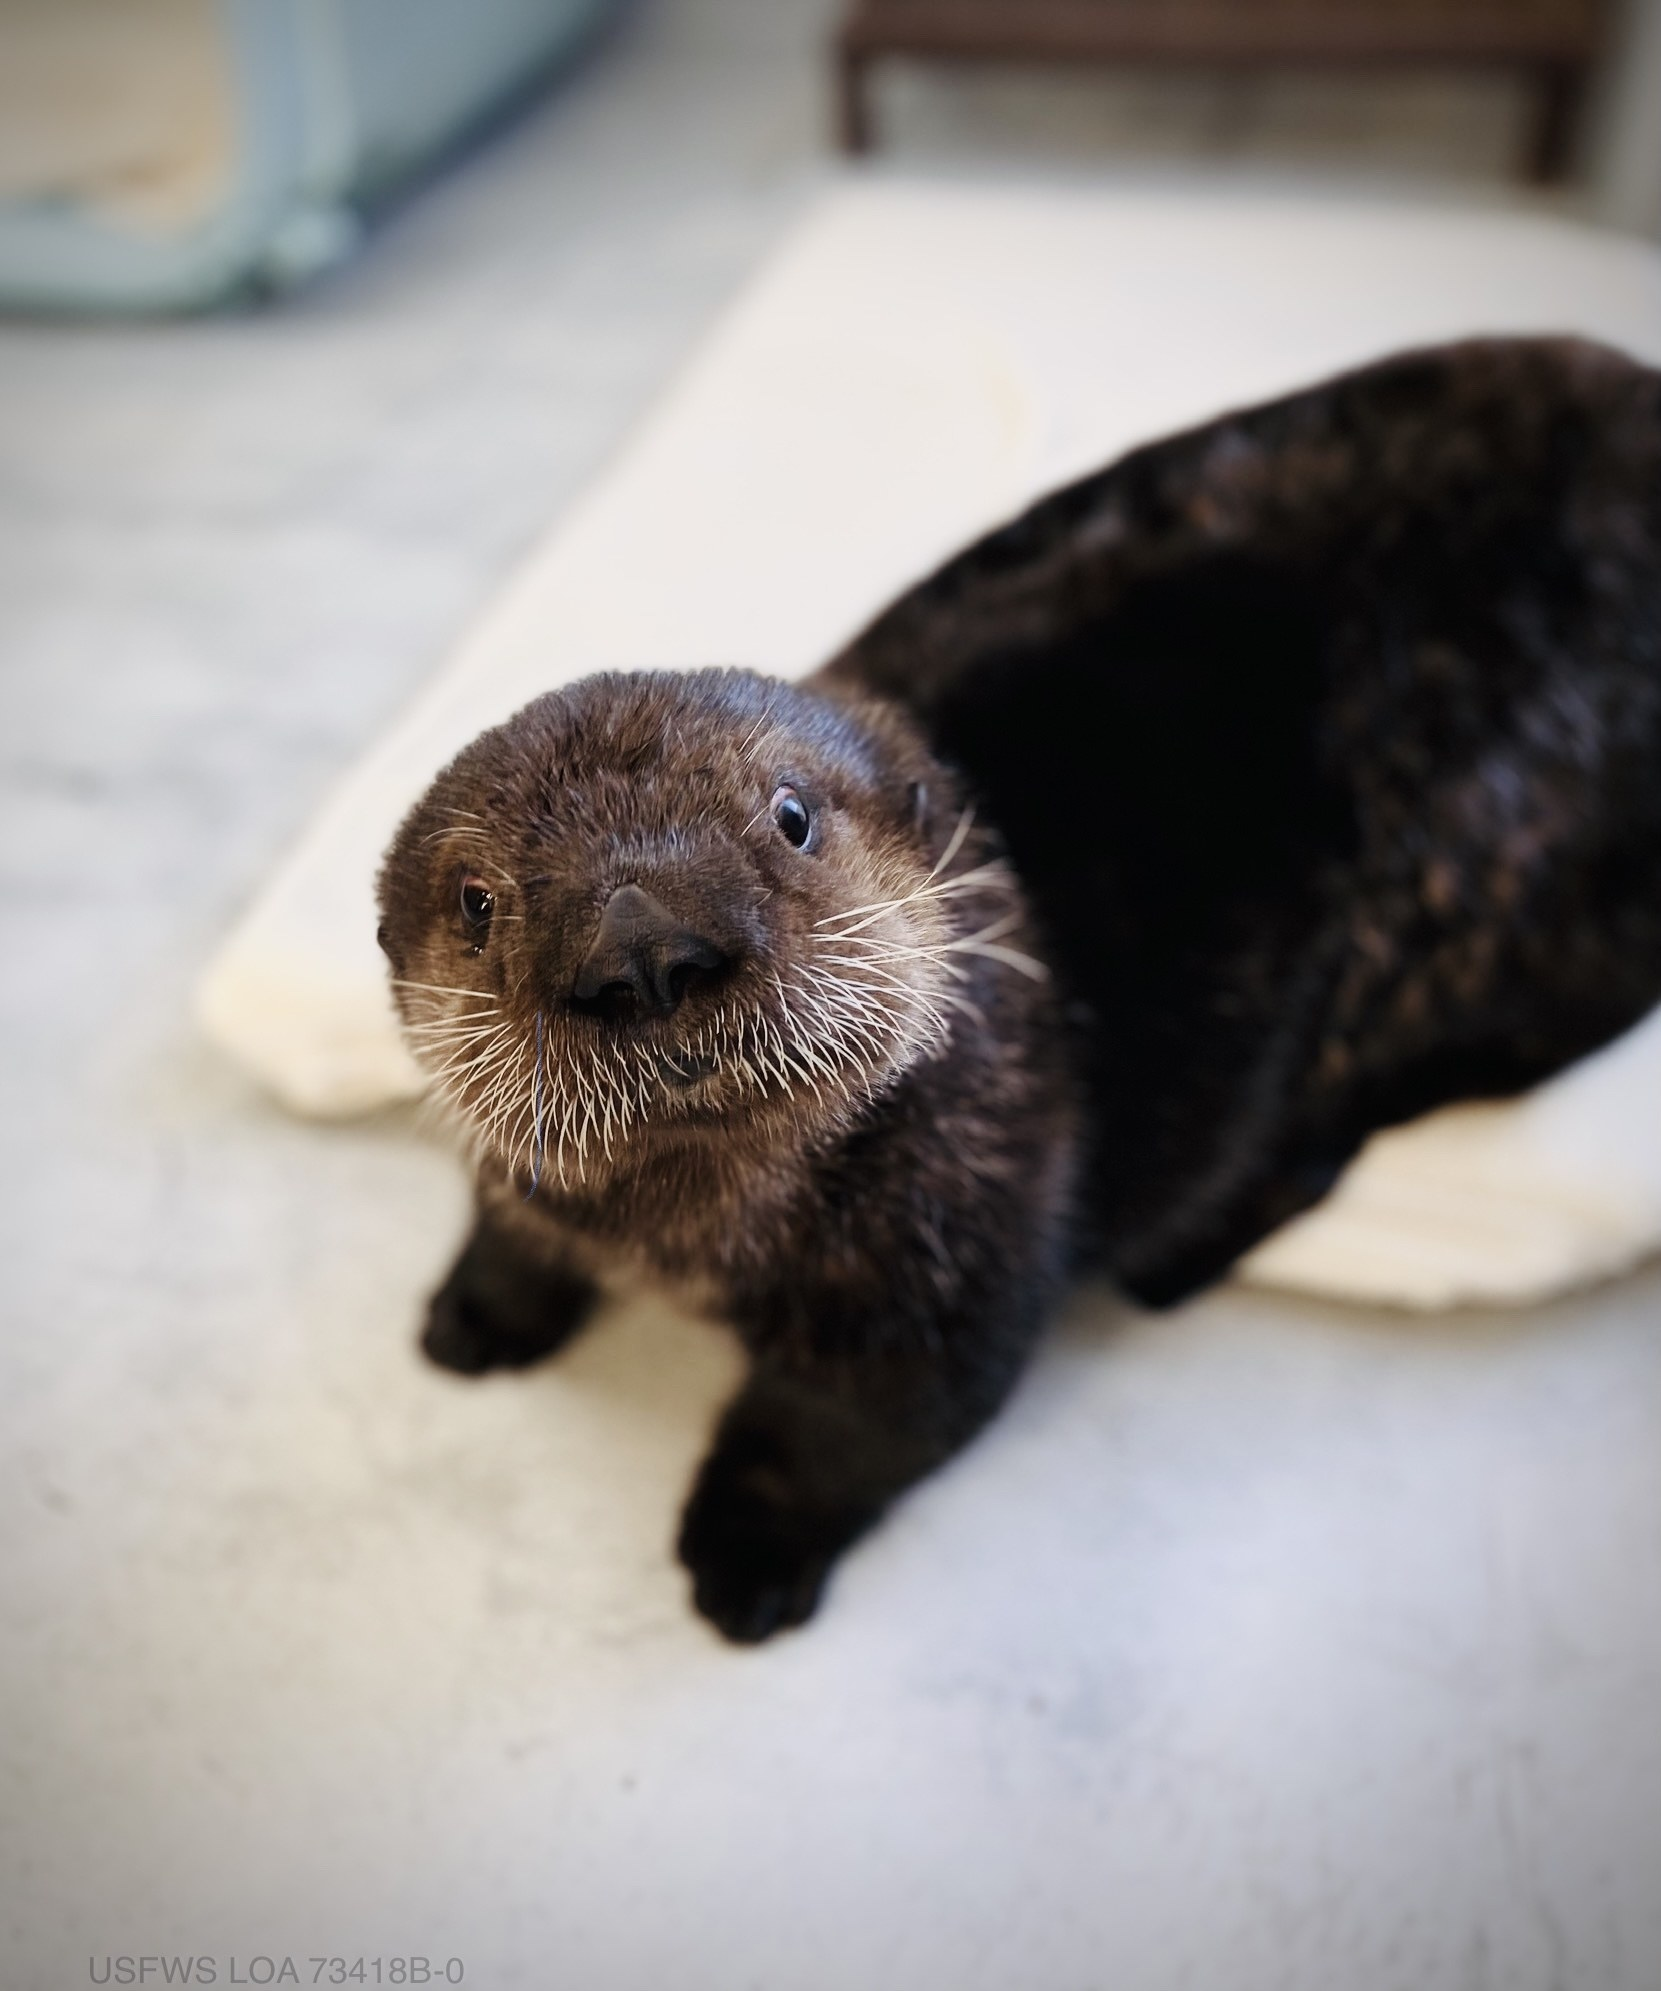 Sea otter sitting on a towel and looking into the camera